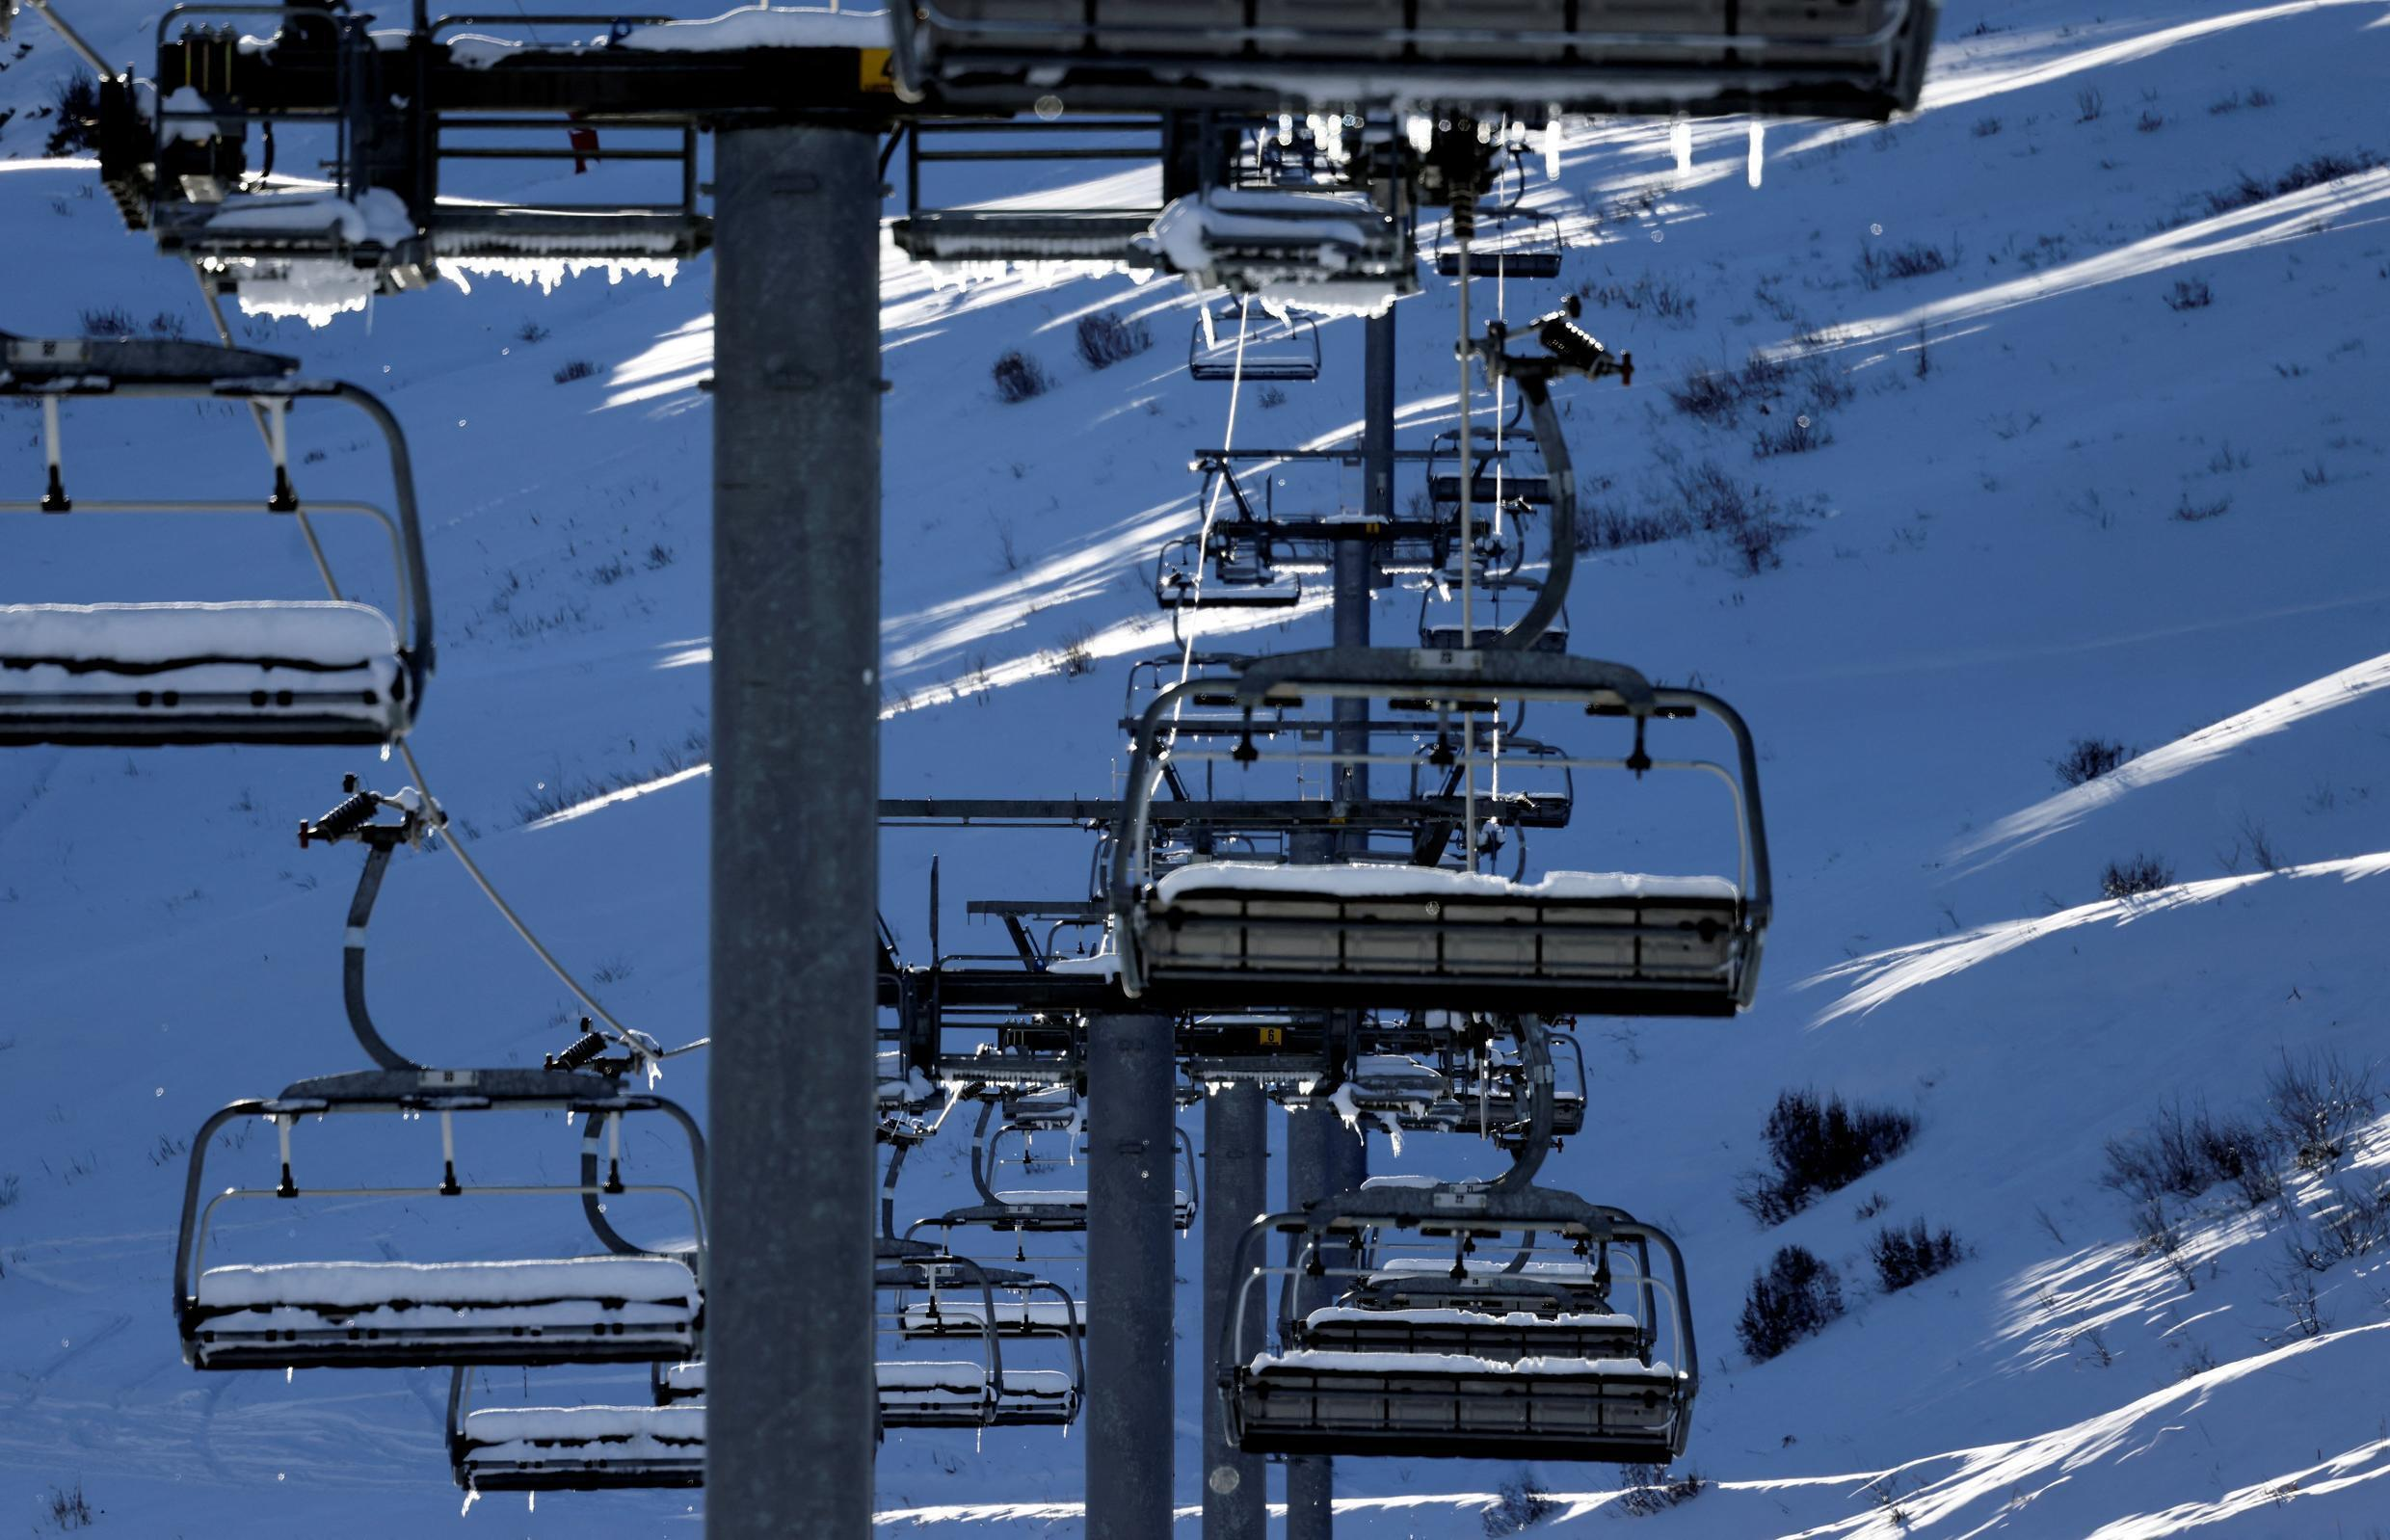 Ski resorts in France still don't know when they will be allowed to reopen chair lifts